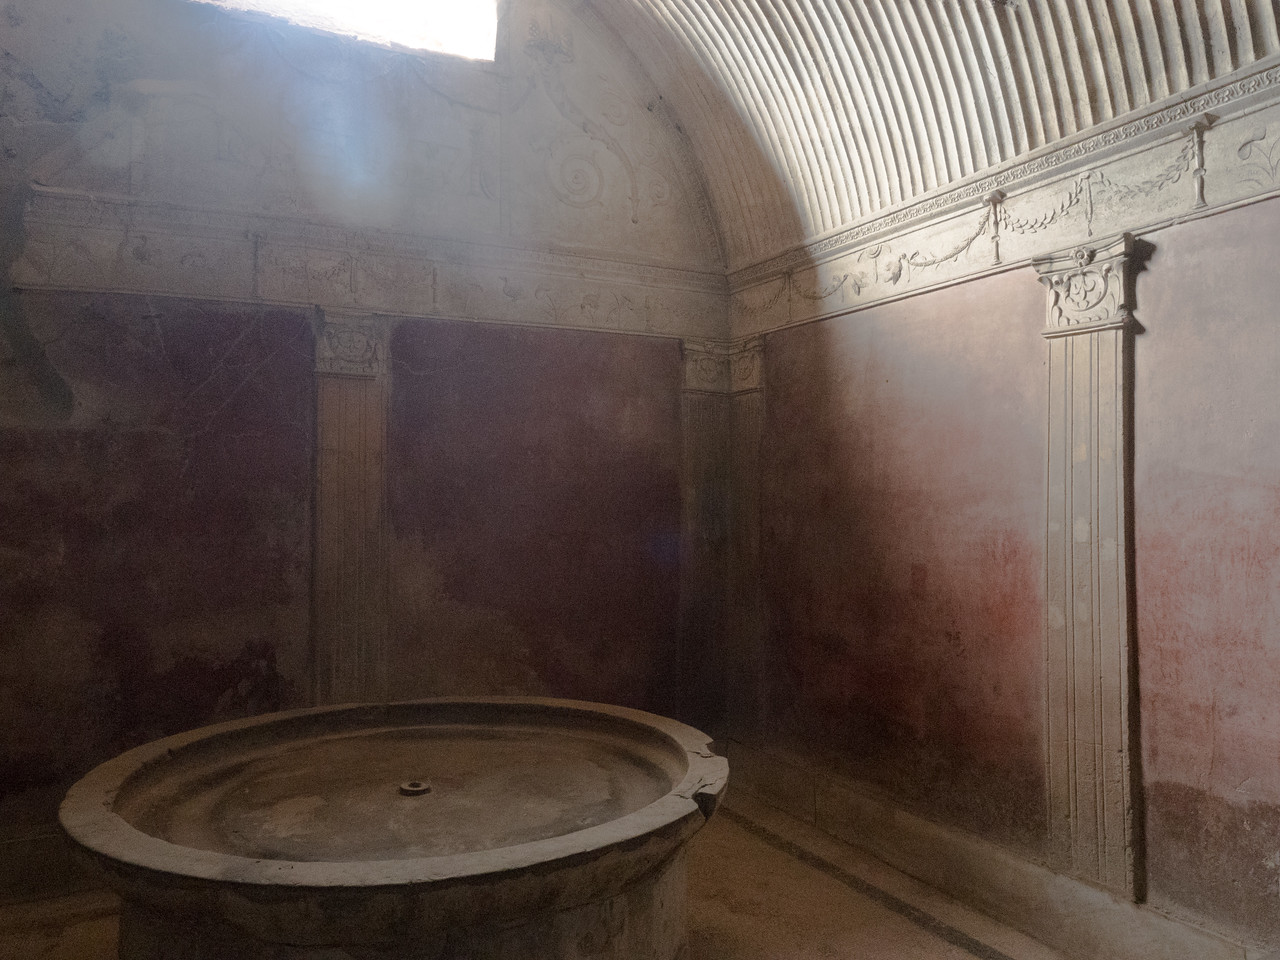 Baths at Terme Stabiane, Pompeii